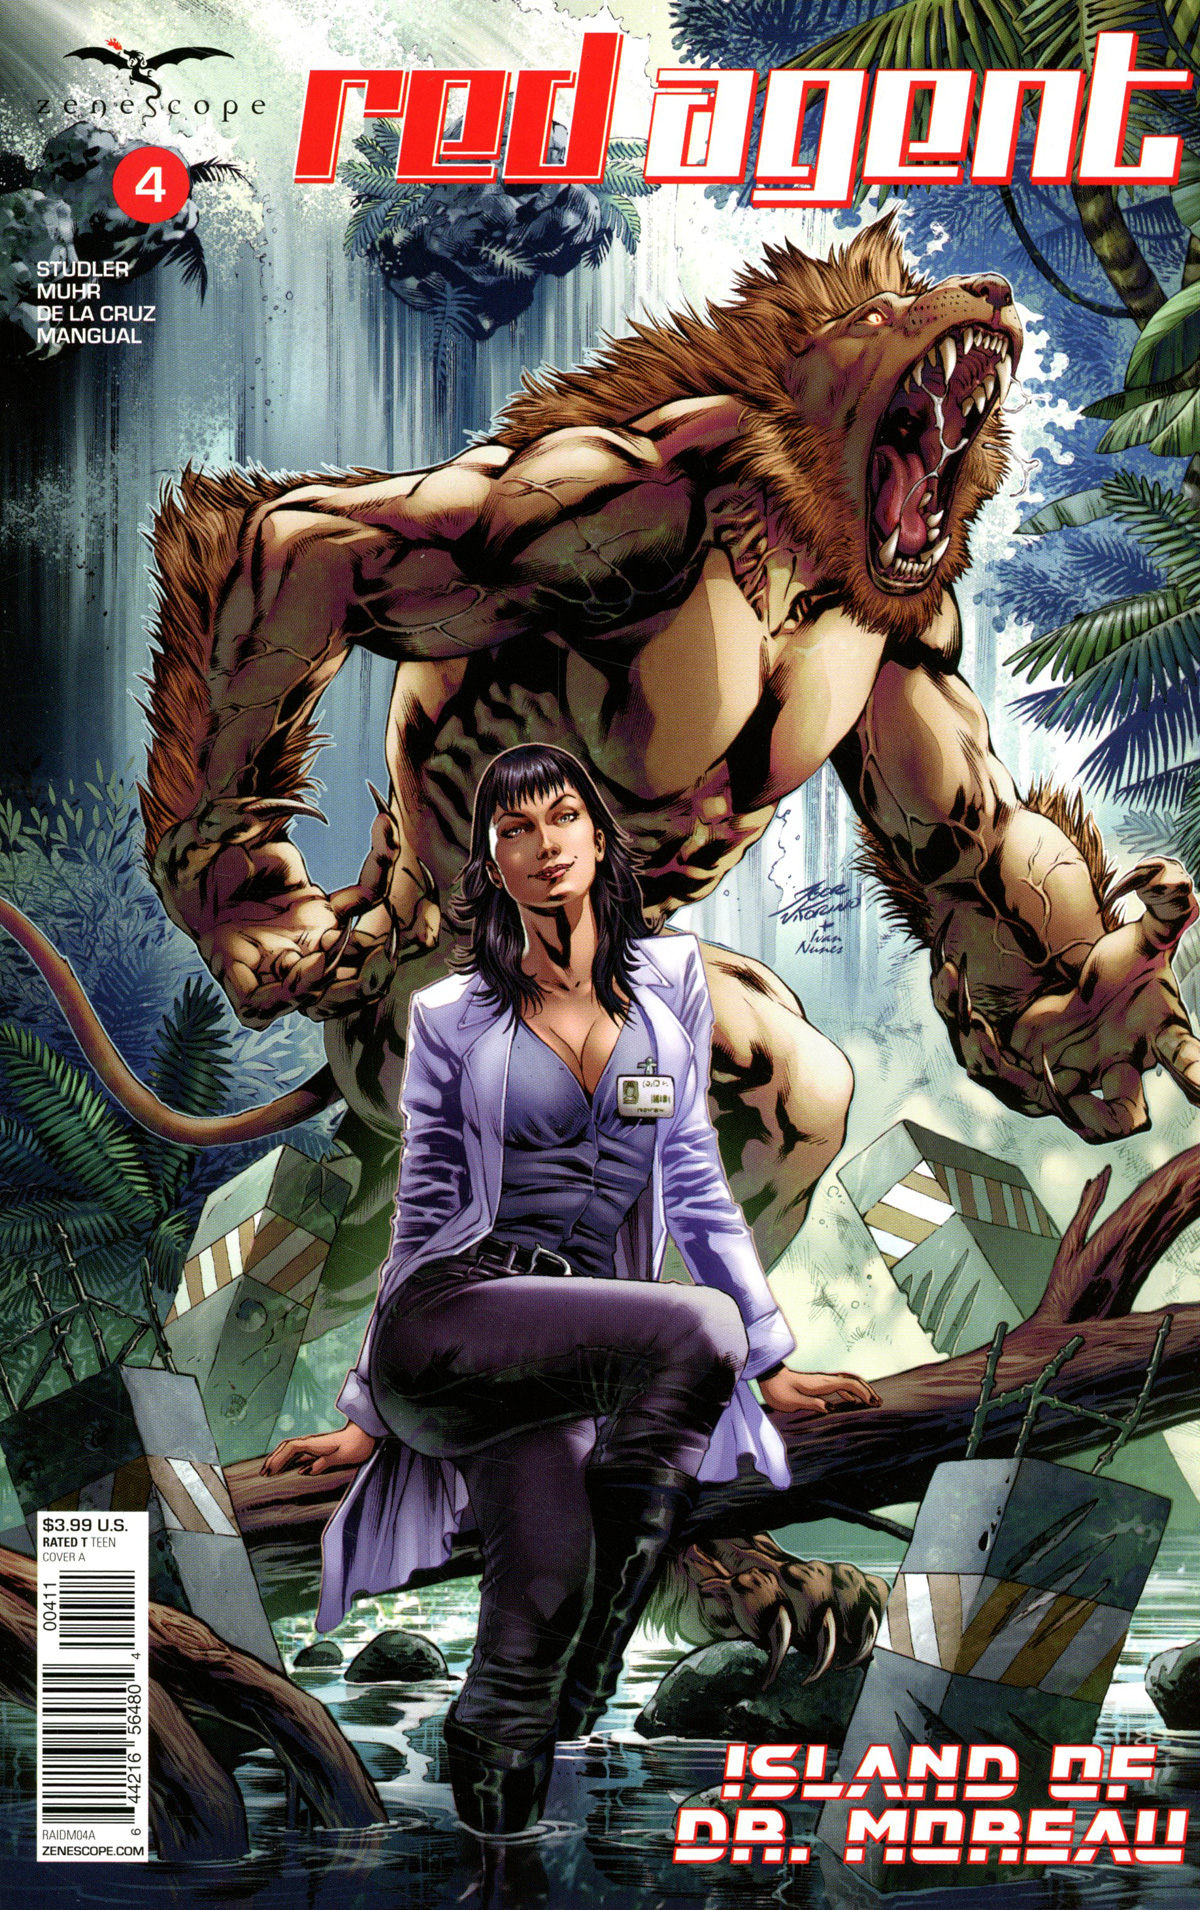 Grimm Fairy Tales Presents Red Agent Island Of Dr Moreau #4 Cover A Igor Vitorino